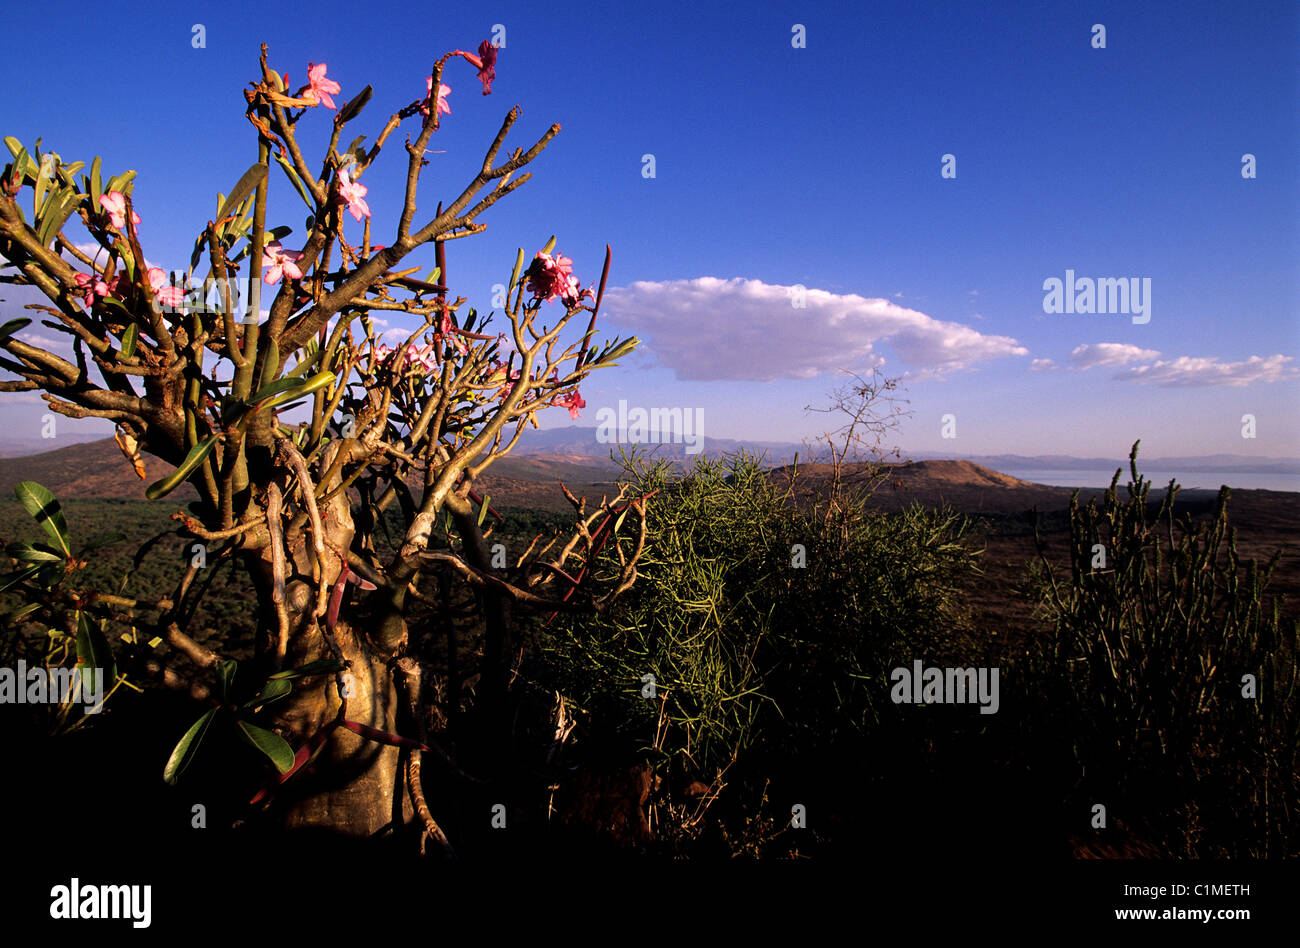 Ethiopia, Rift valley, Arba Minch, little baobab and the lake Chamo and Nechisar national park in the background Stock Photo